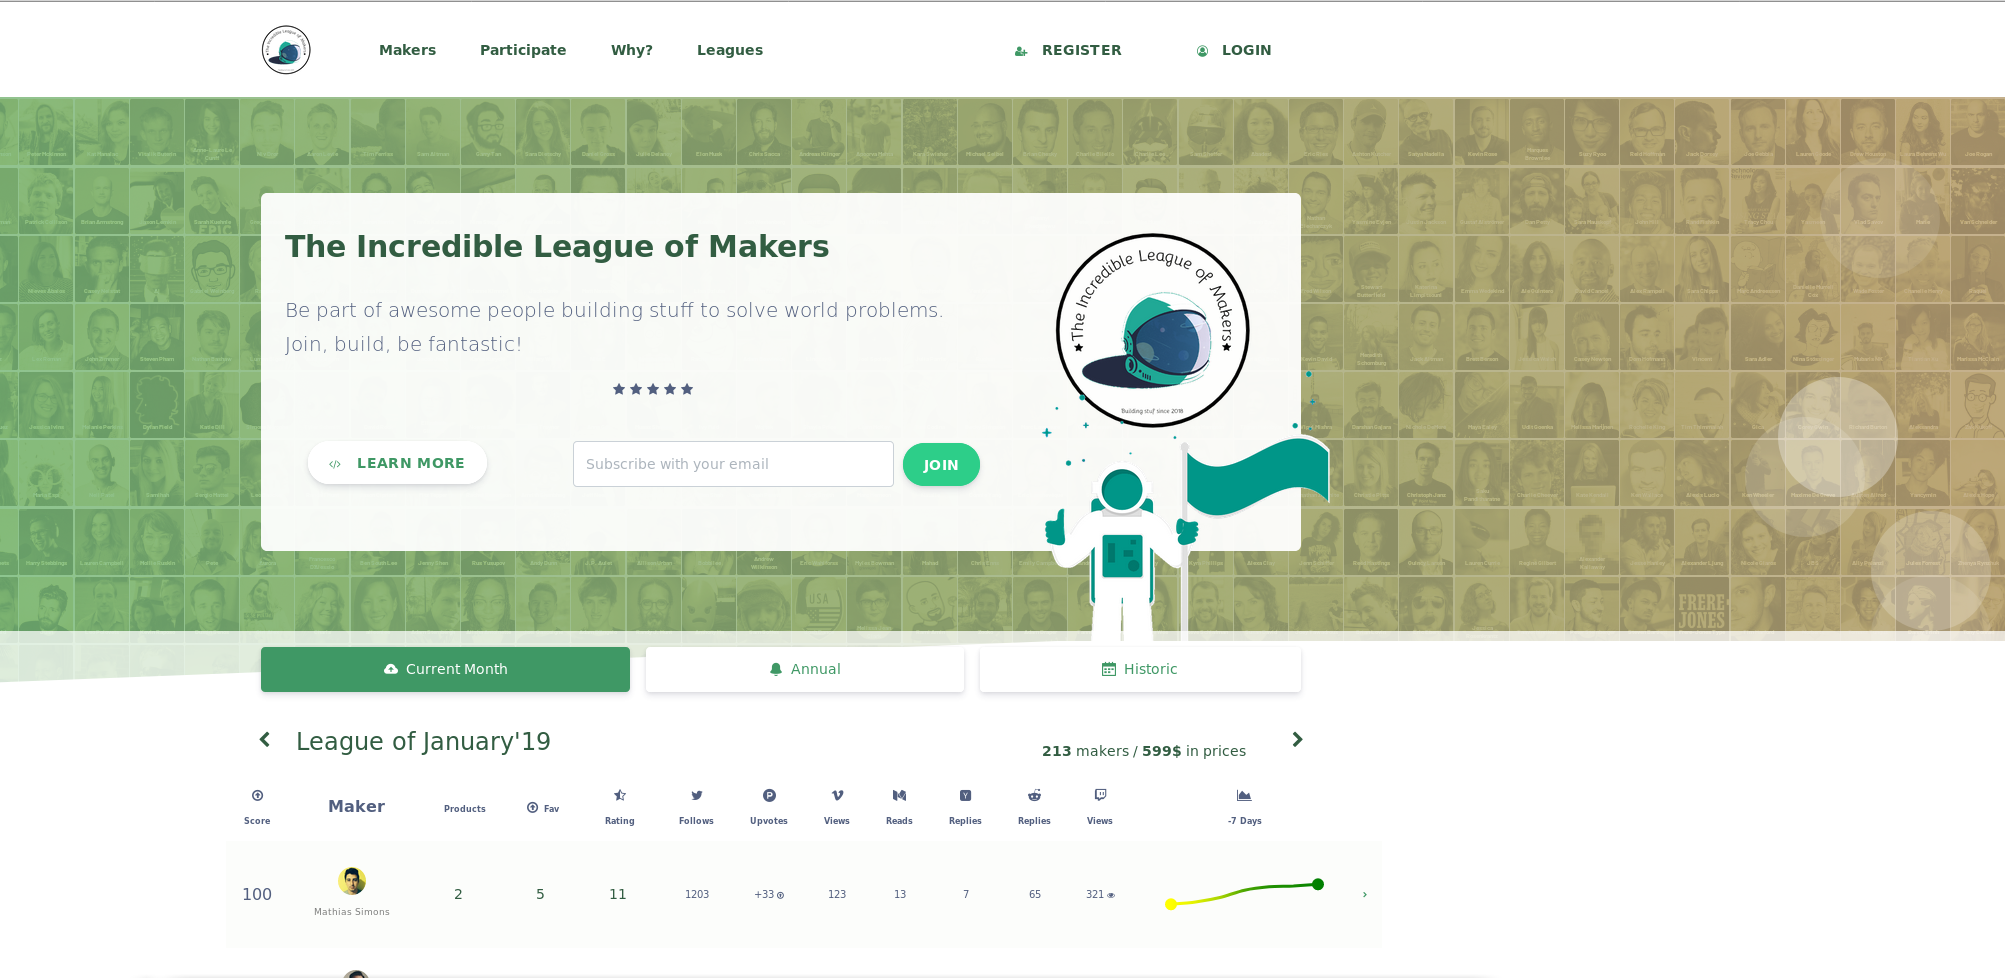 The Incredible League of Makers